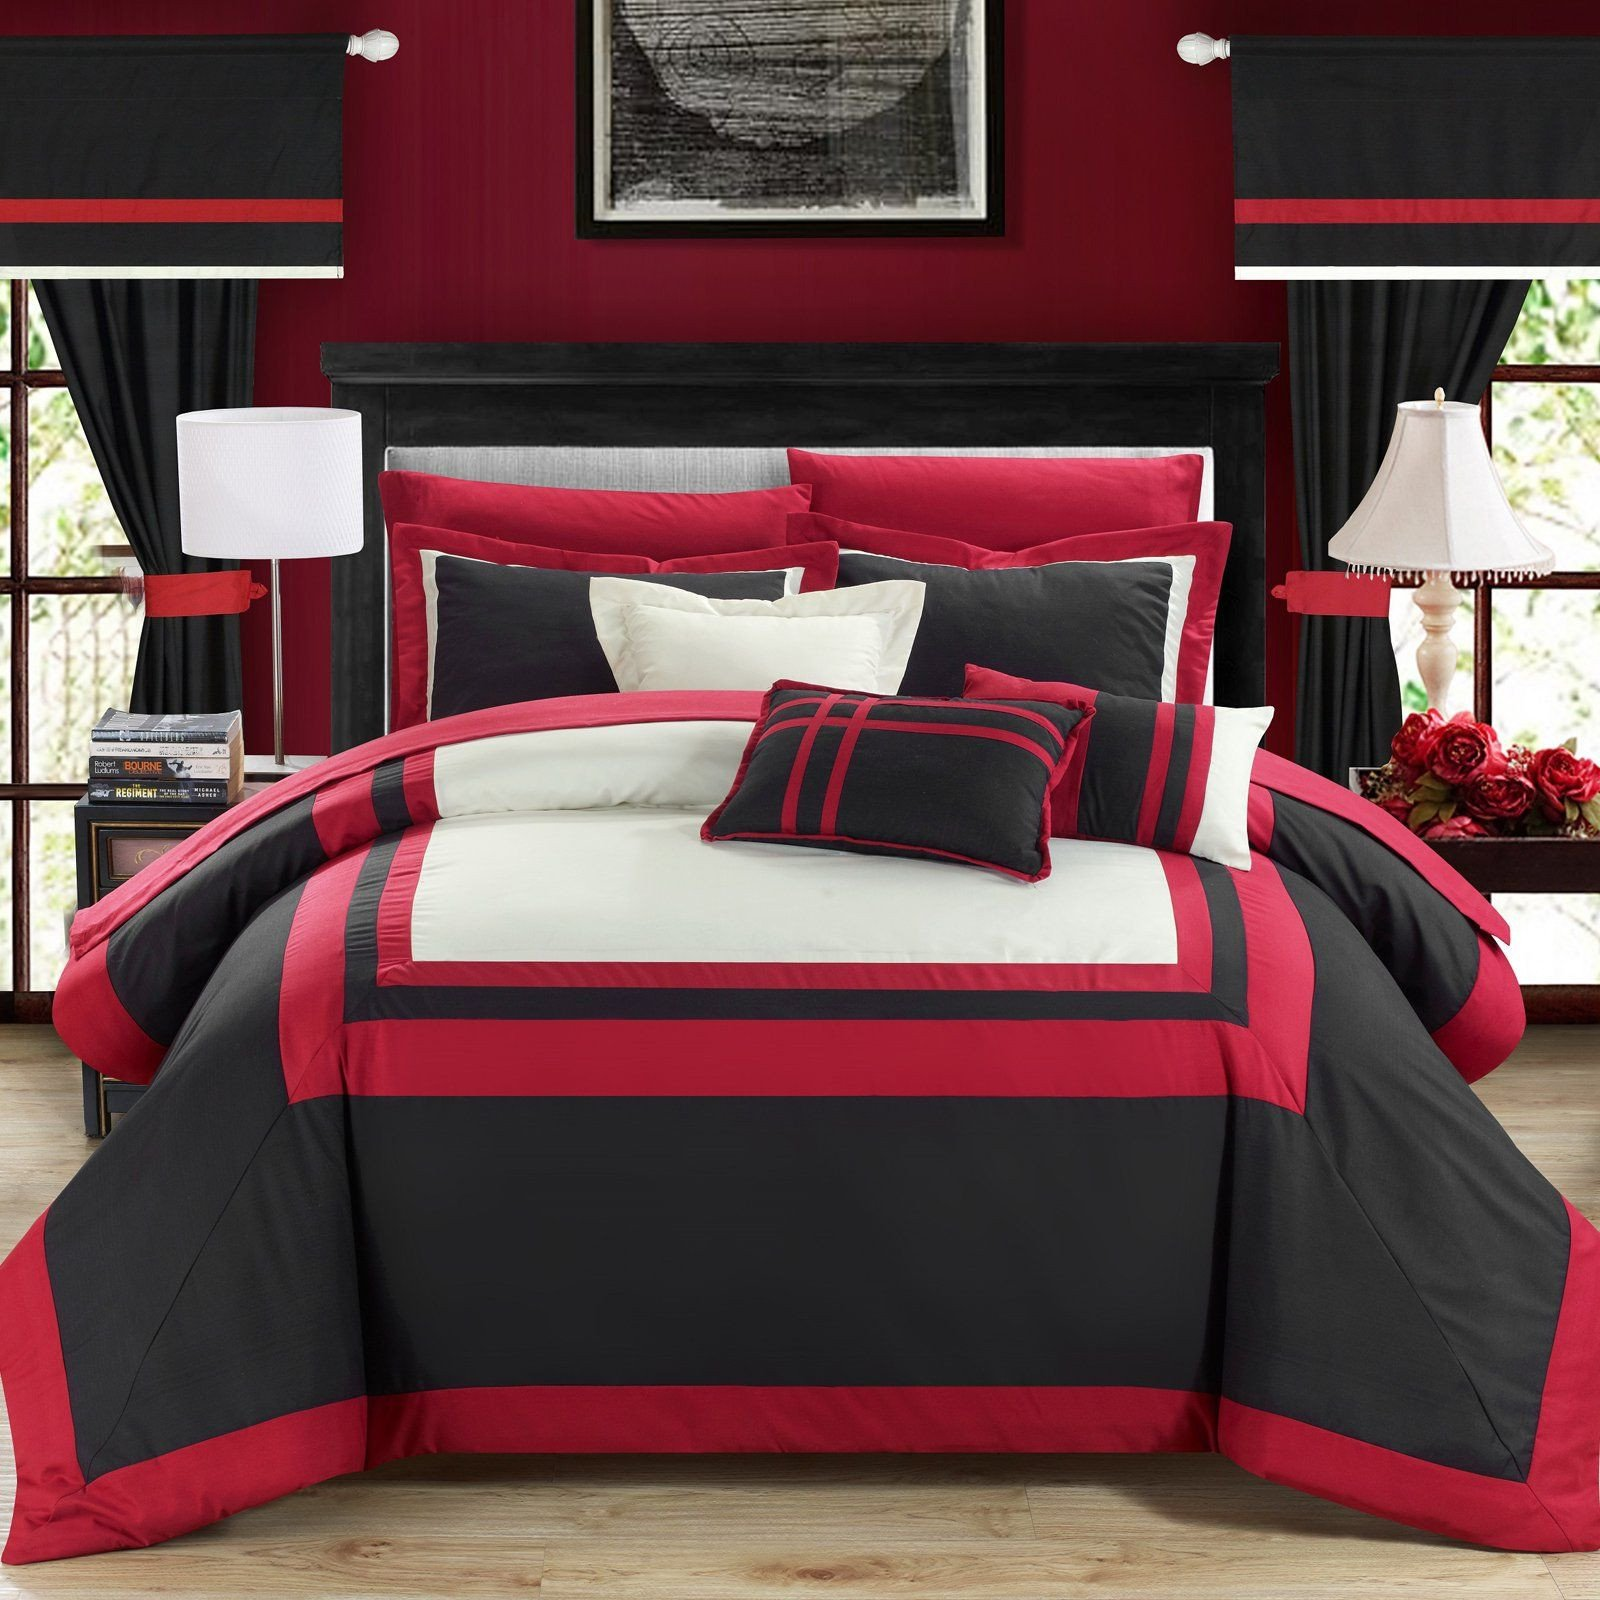 Red and Black Bedroom Set New Christofle 20 Piece Room In A Bag by Chic Home Black